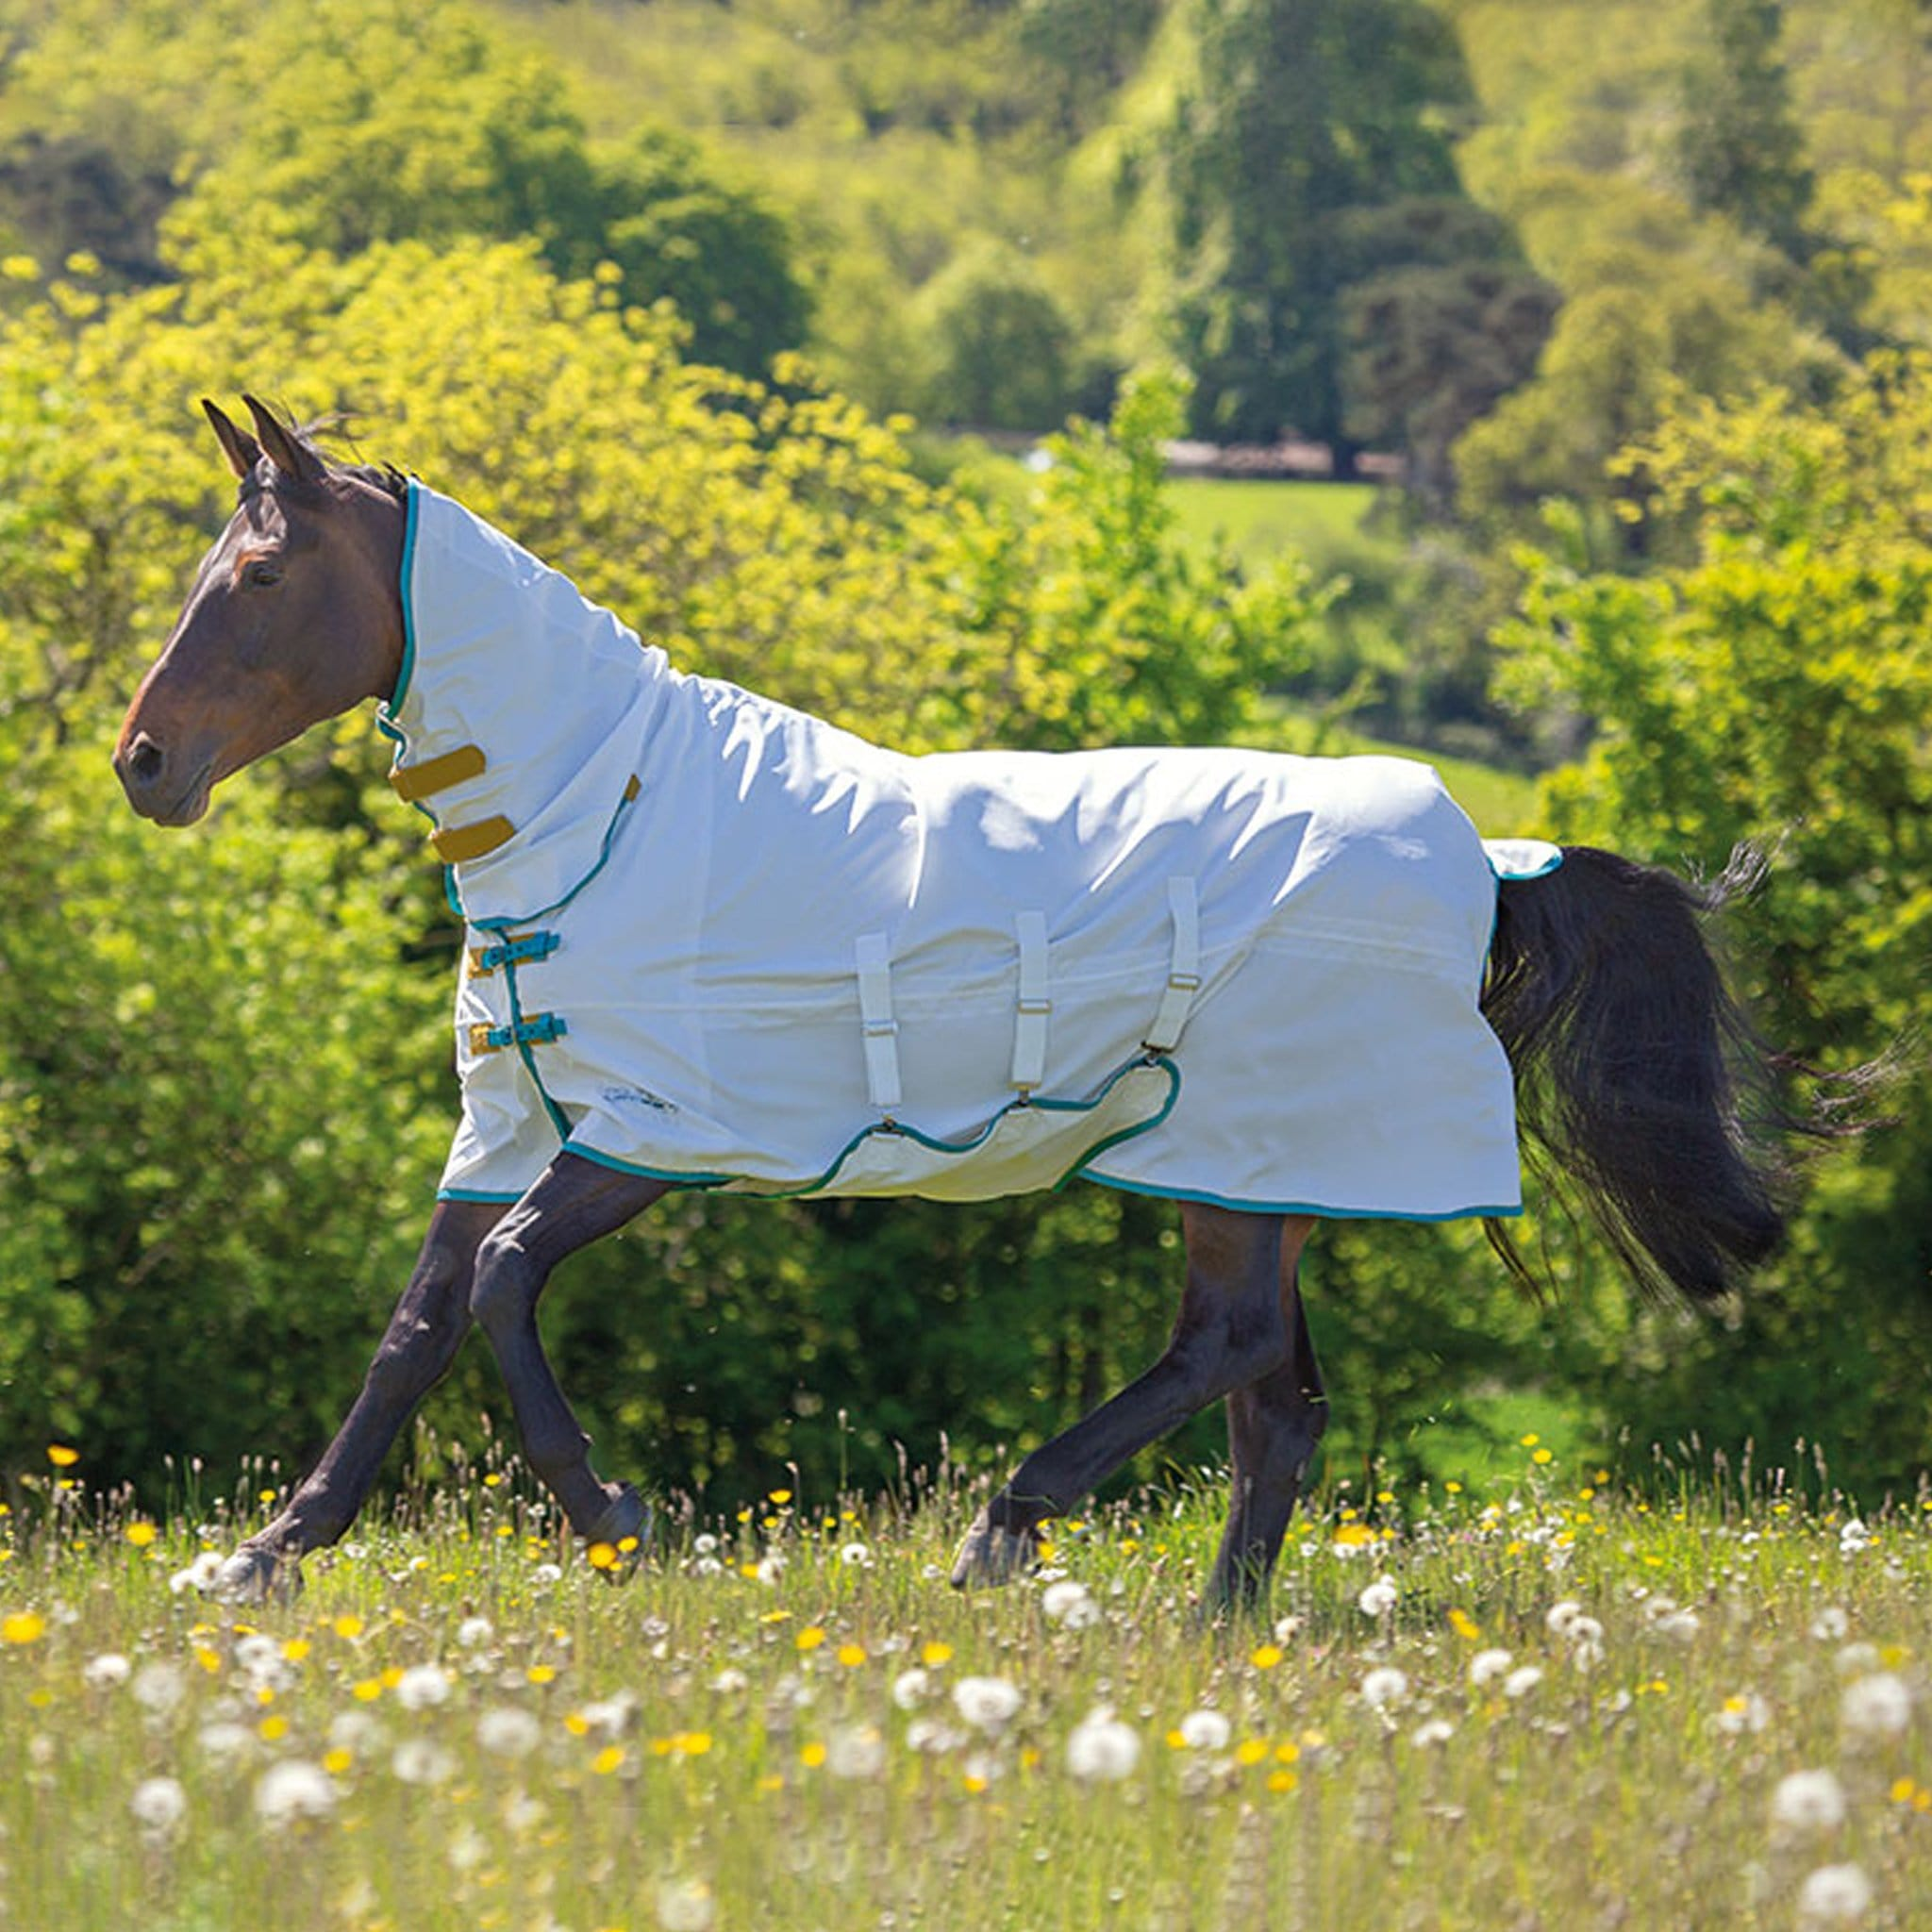 Shires Tempest Plus Sweet-Itch Combo Fly Rug 9325 White With Green And Yellow Trim on horse cantering